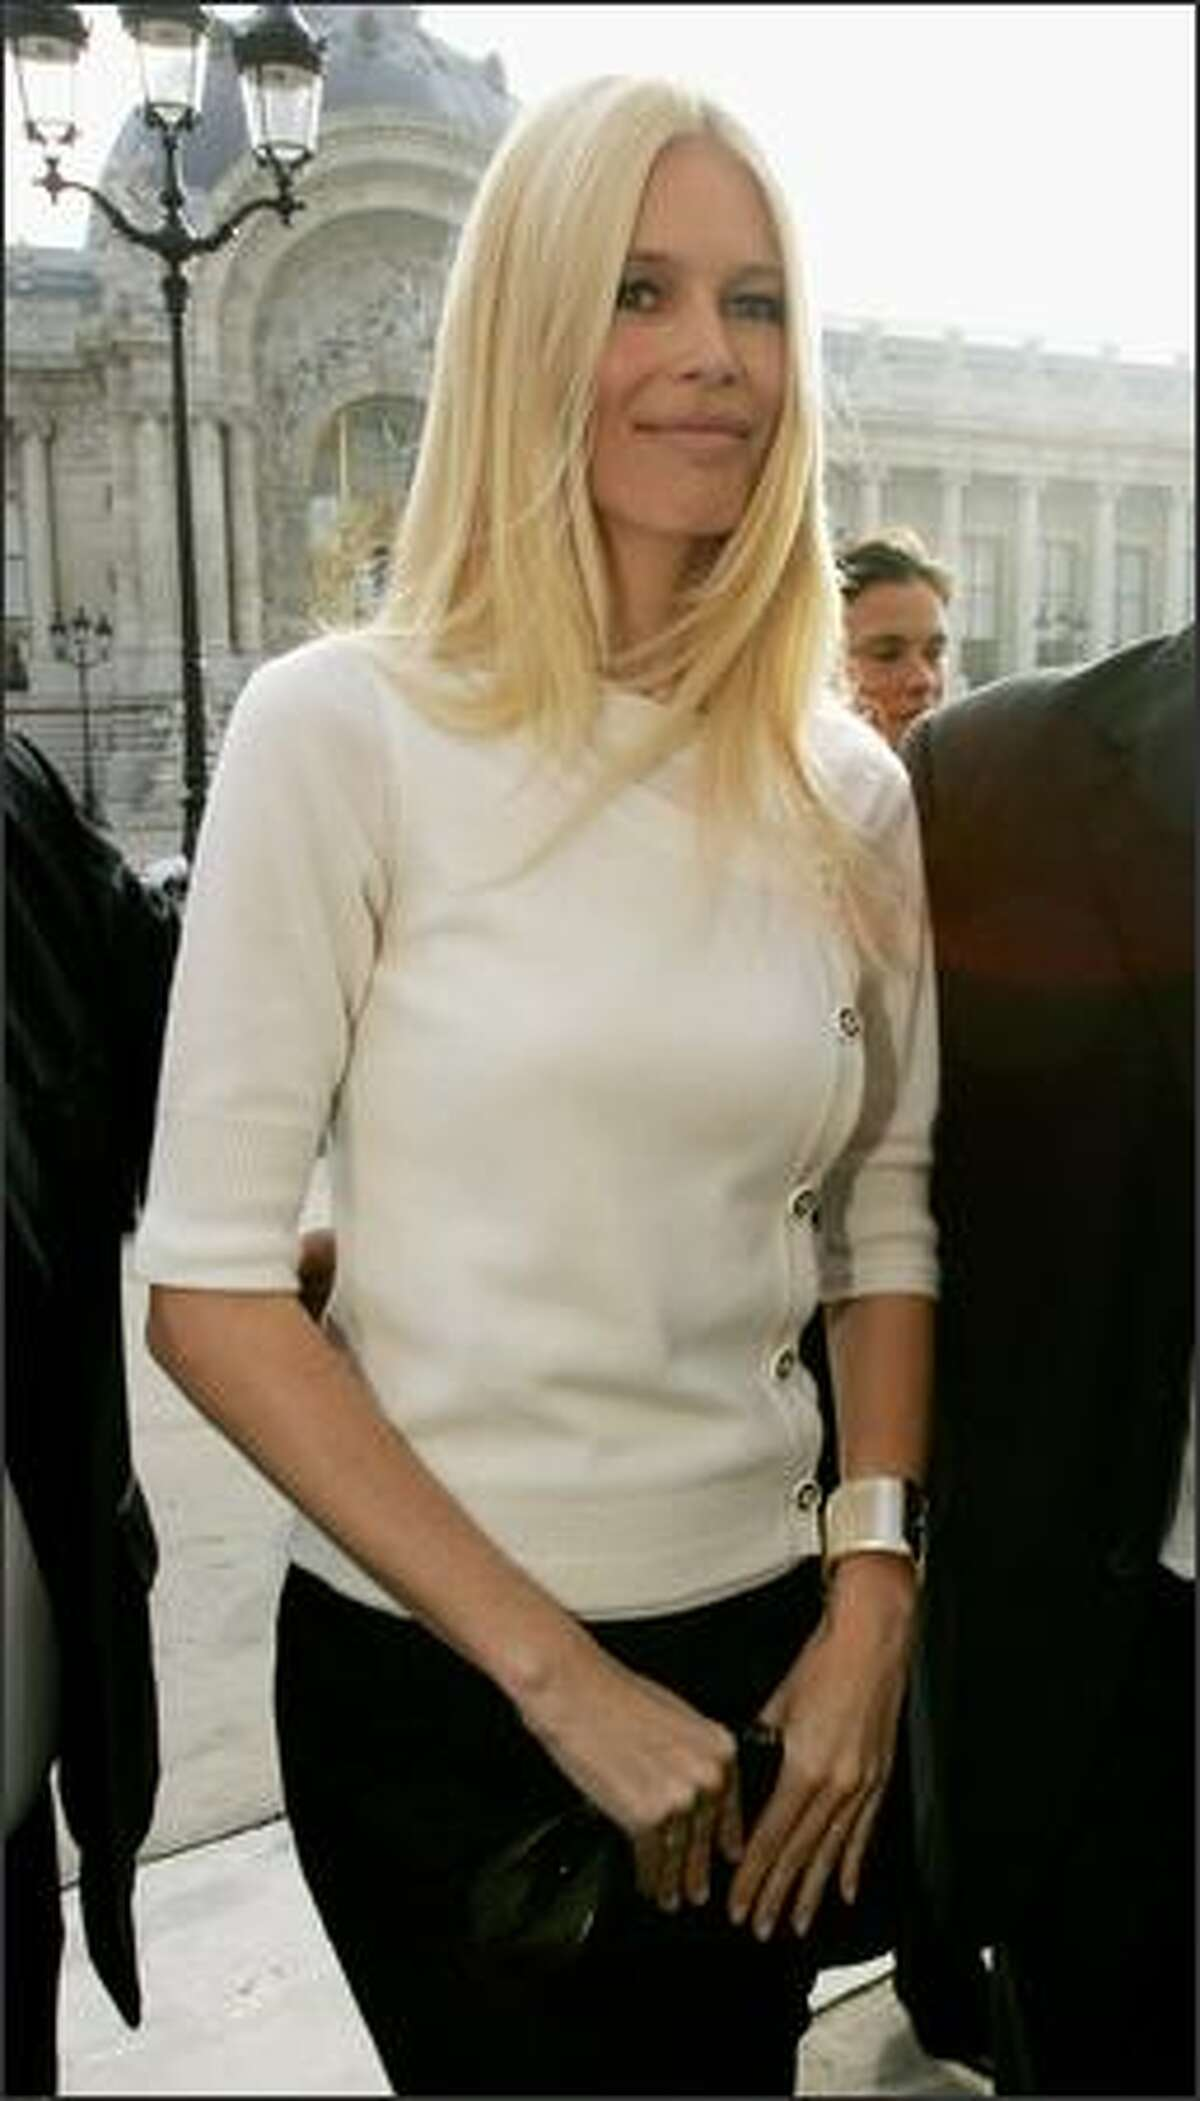 Model Claudia Schiffer arrives to attend the Chanel Fashion show during the Paris Fashion Week Sp/Sum October 5, 2007 in Paris, France.